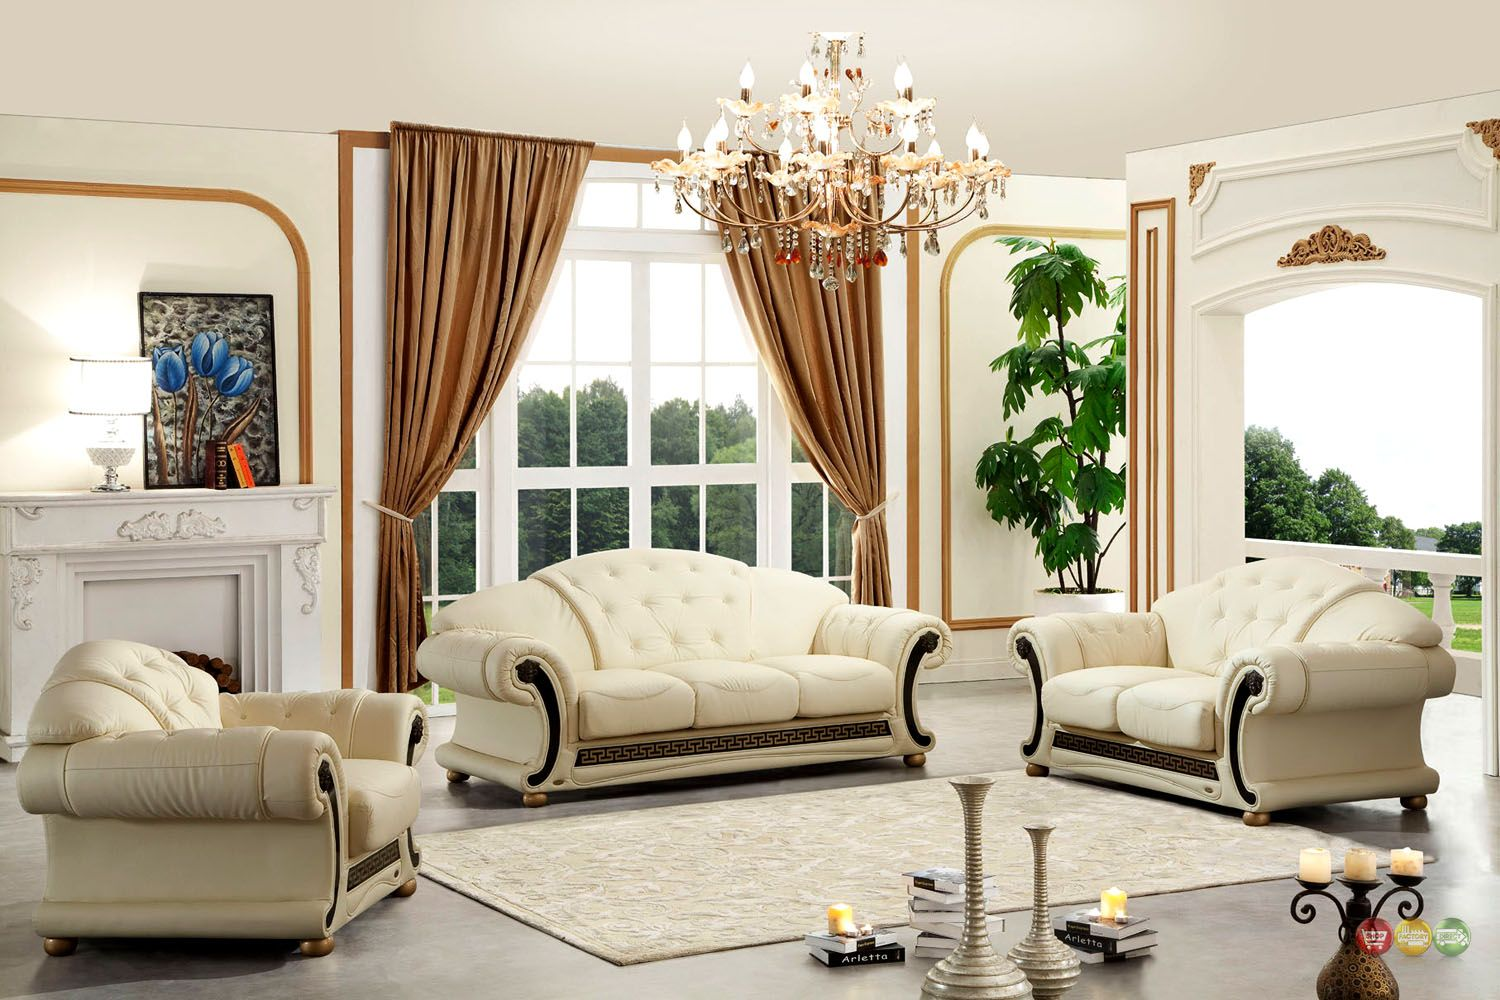 Best Versace Cleopatra Cream Italian Top Grain Leather Beige Living Room Sofa Set Home Decor 400 x 300